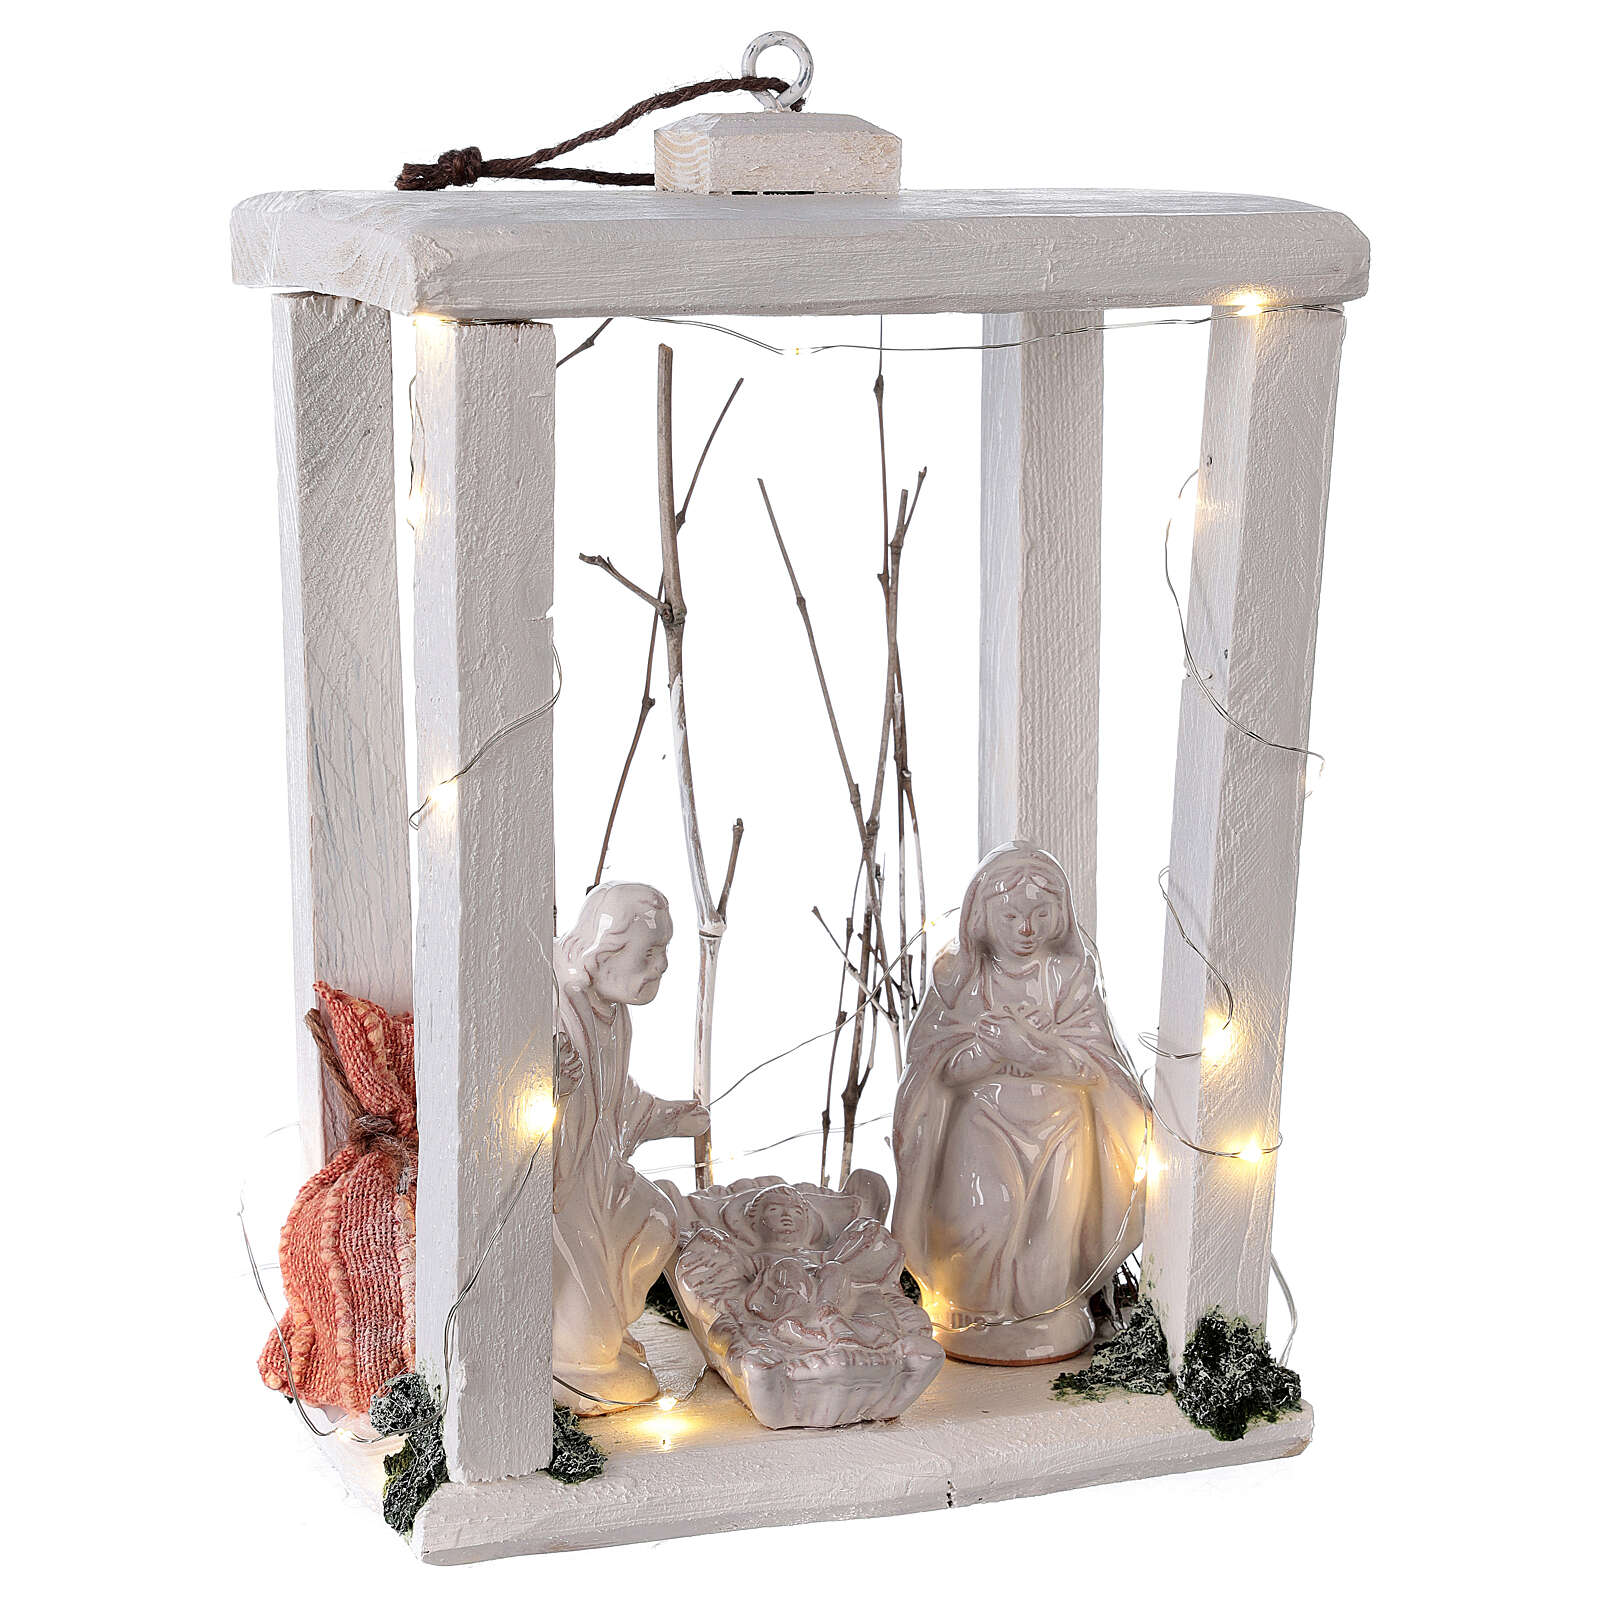 Nativity Christmas lantern wood Deruta terracotta statues 30x22x18 micro LED light 4